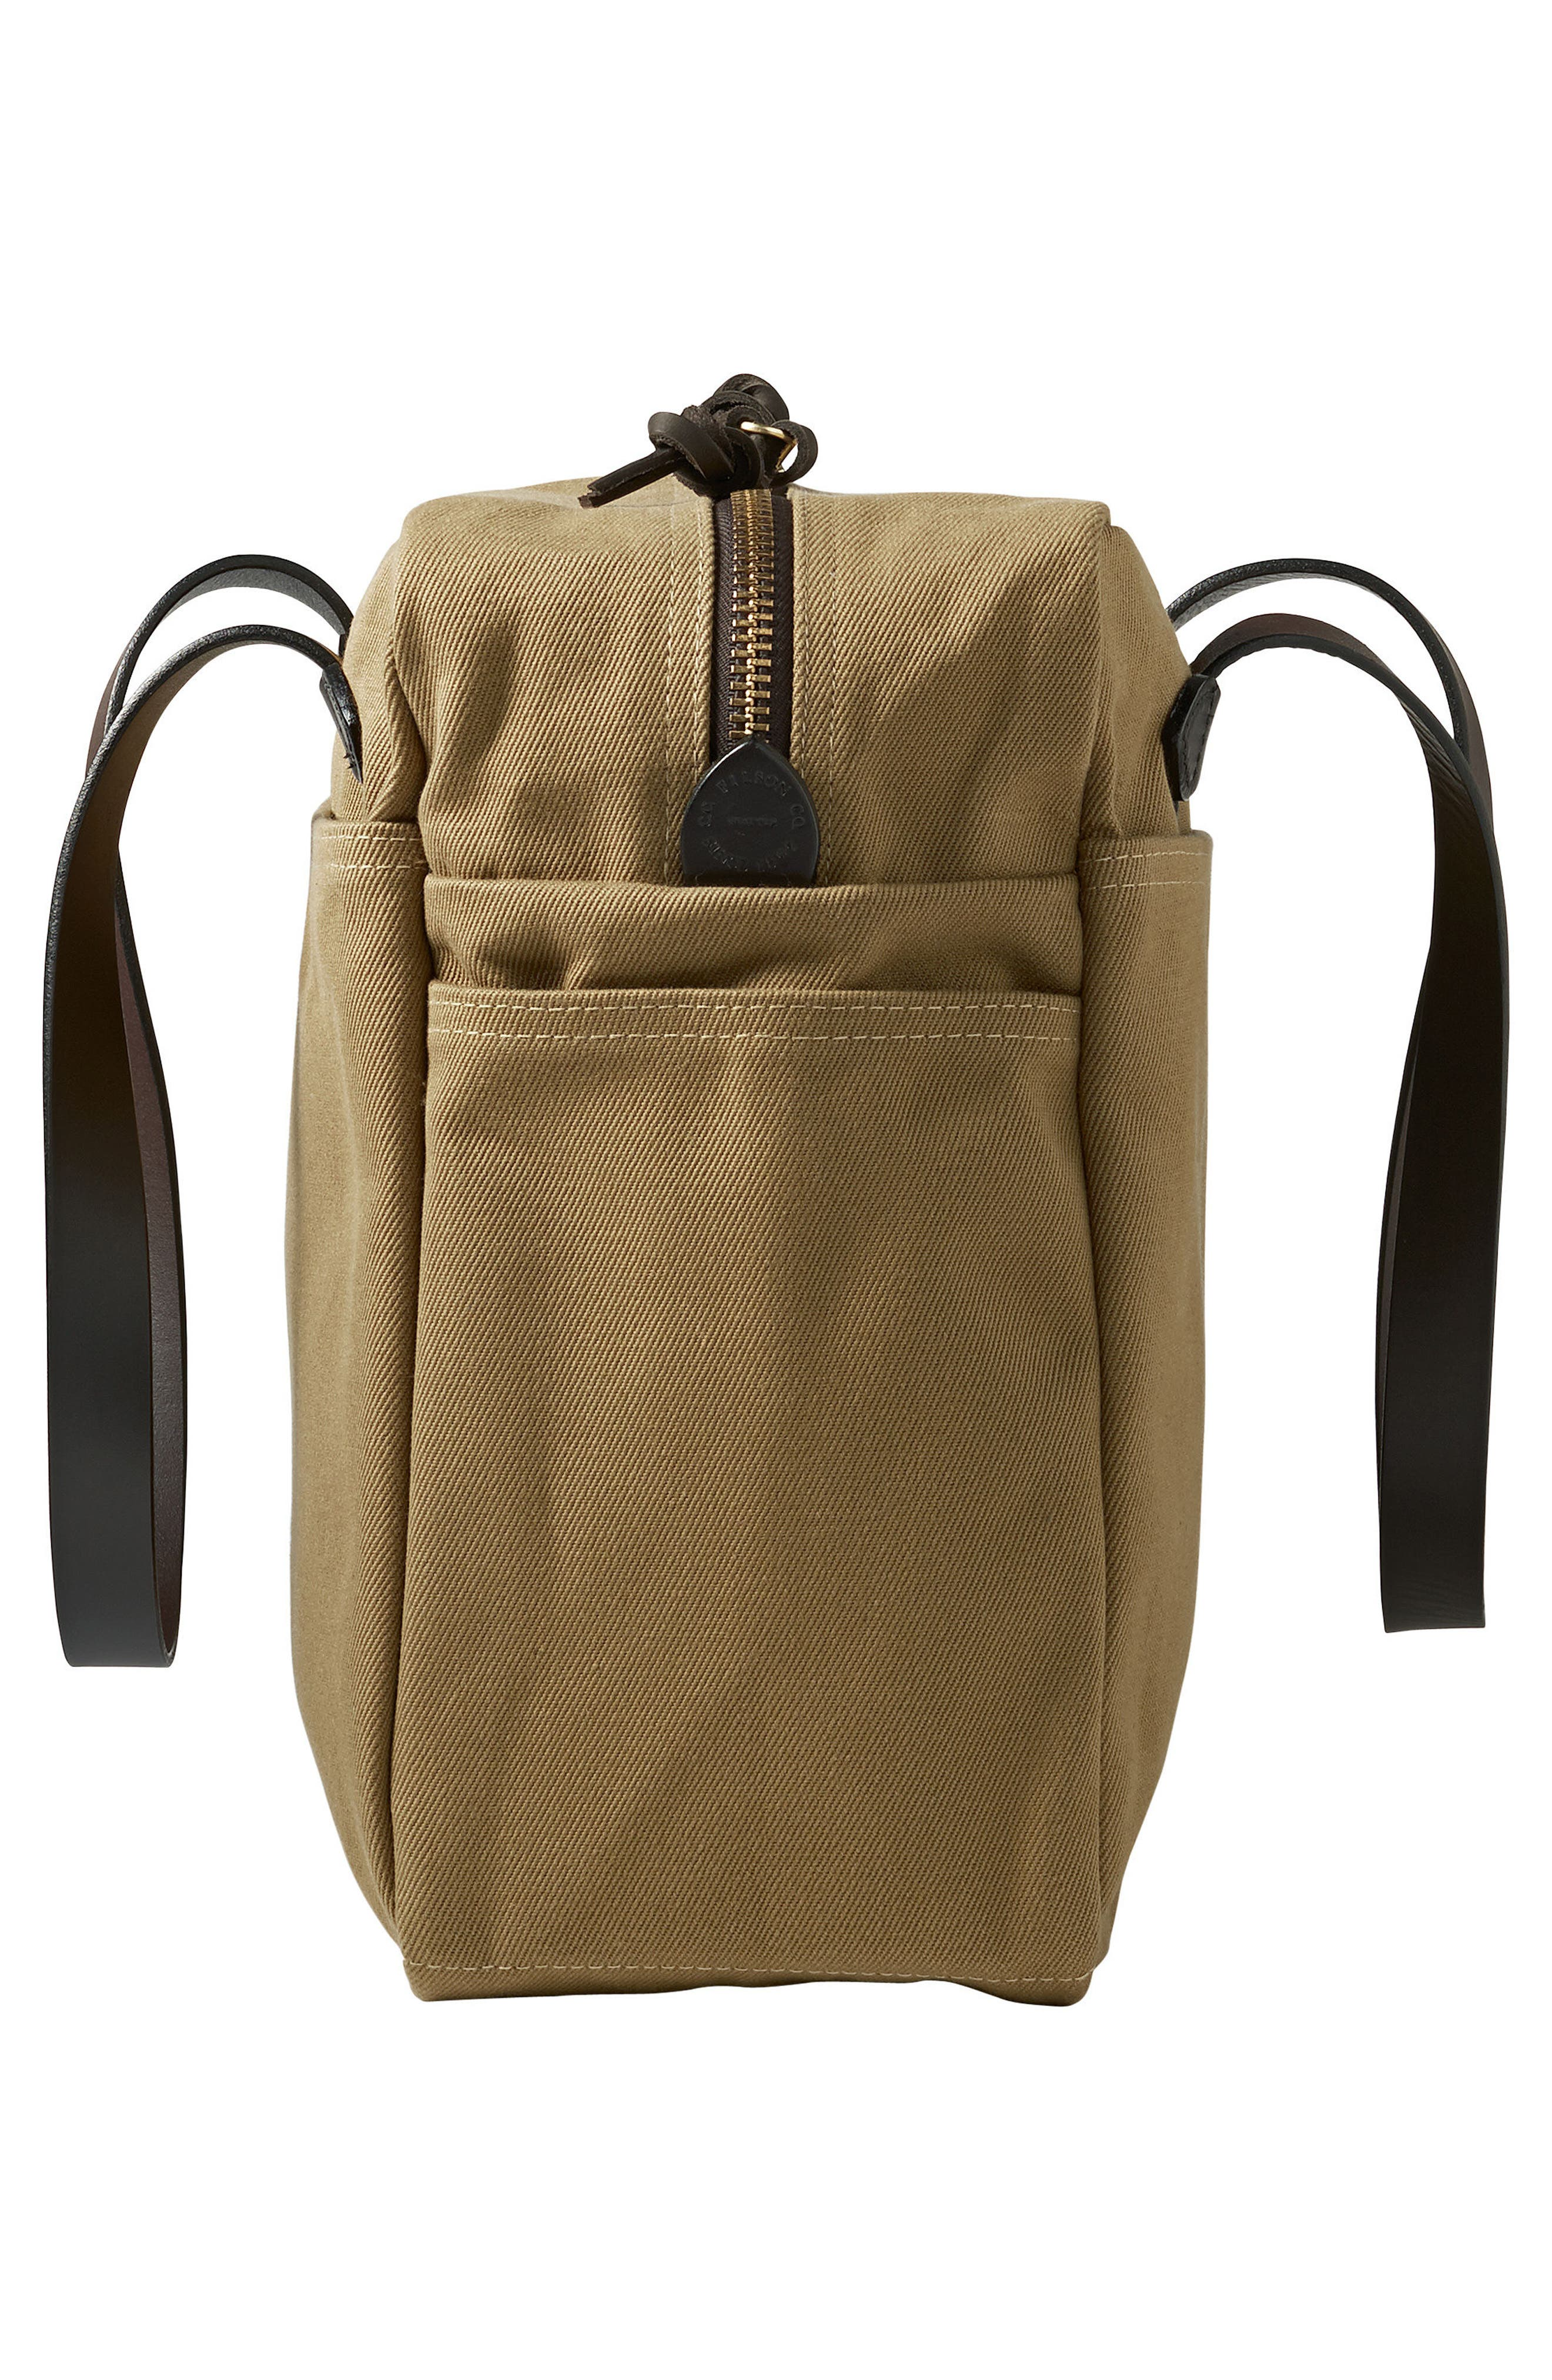 Rugged Twill Zip Tote Bag,                             Alternate thumbnail 4, color,                             242